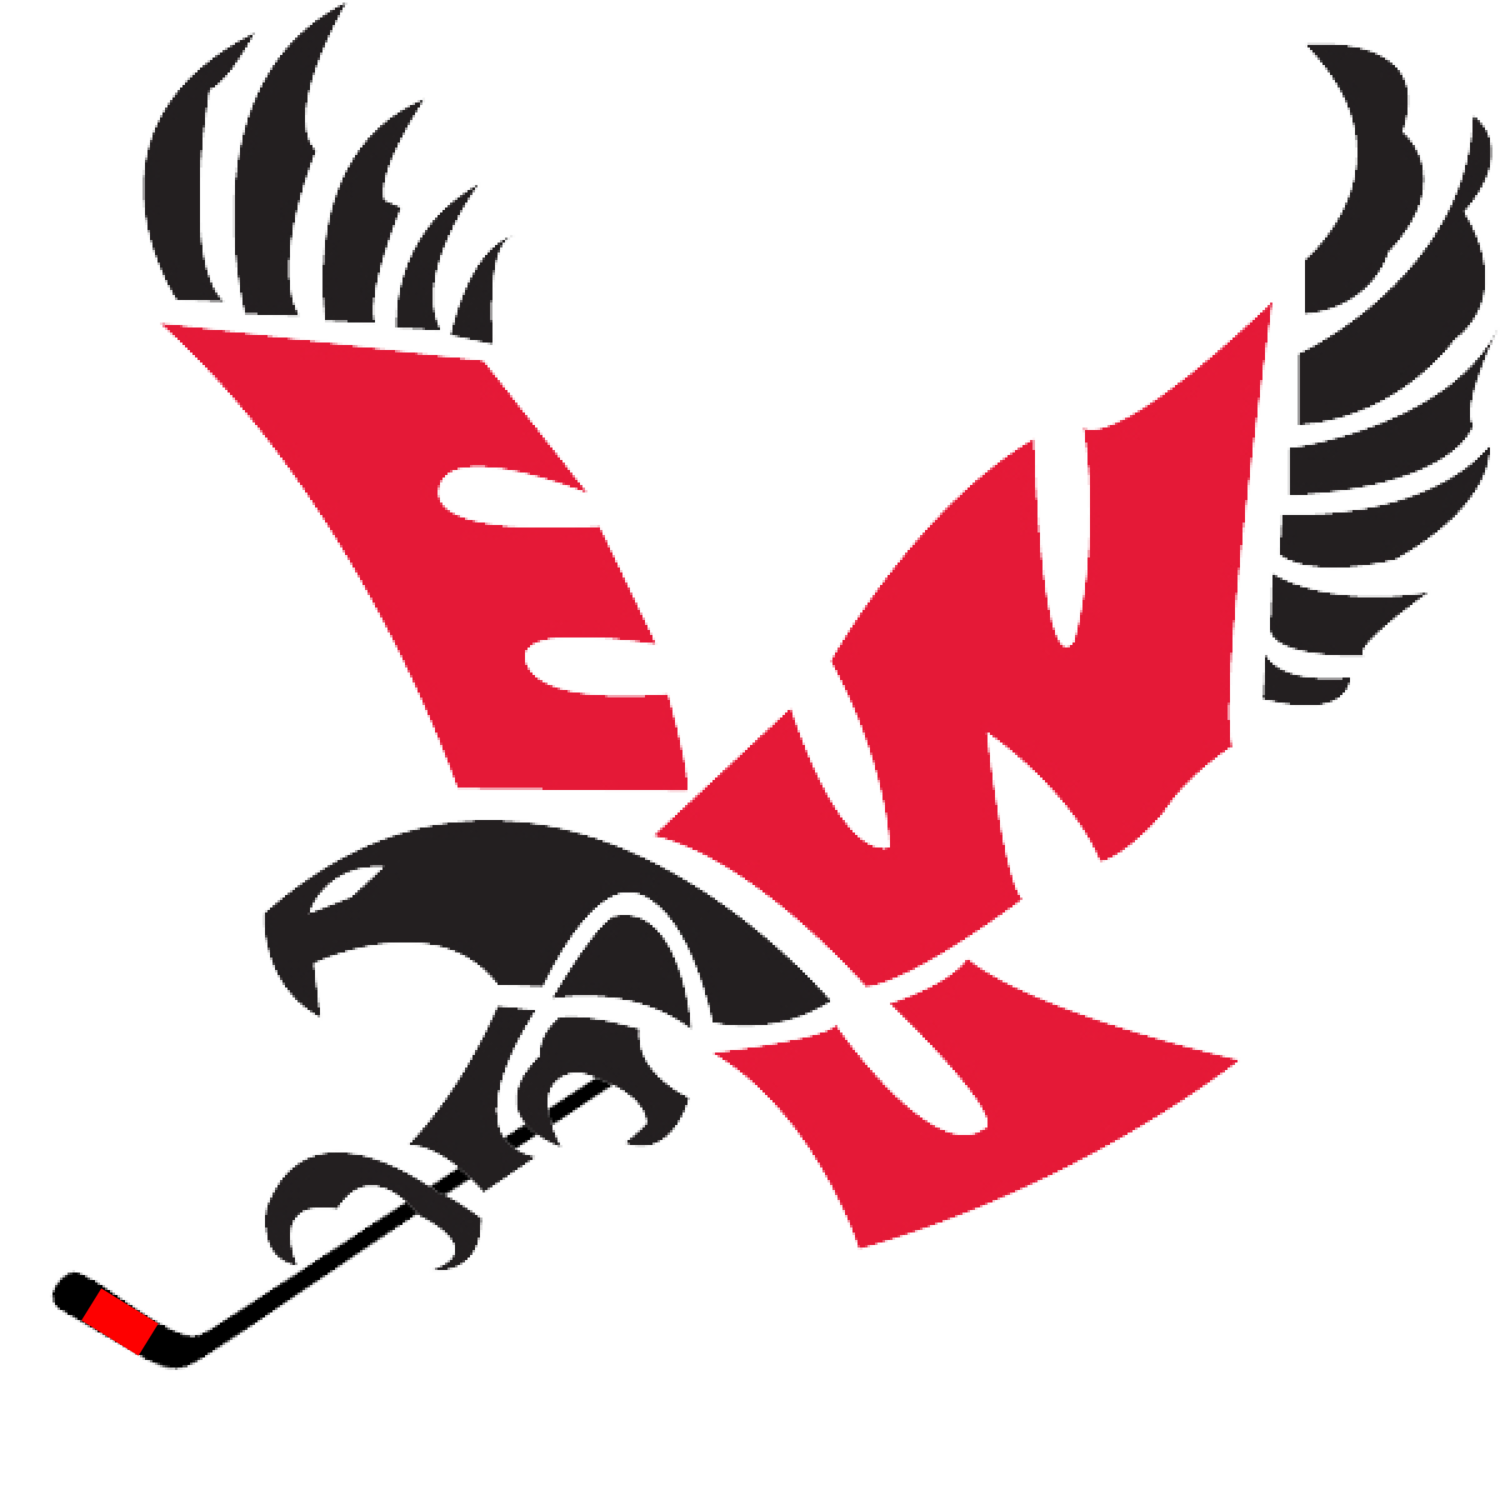 EWU Eagles Hockey Club